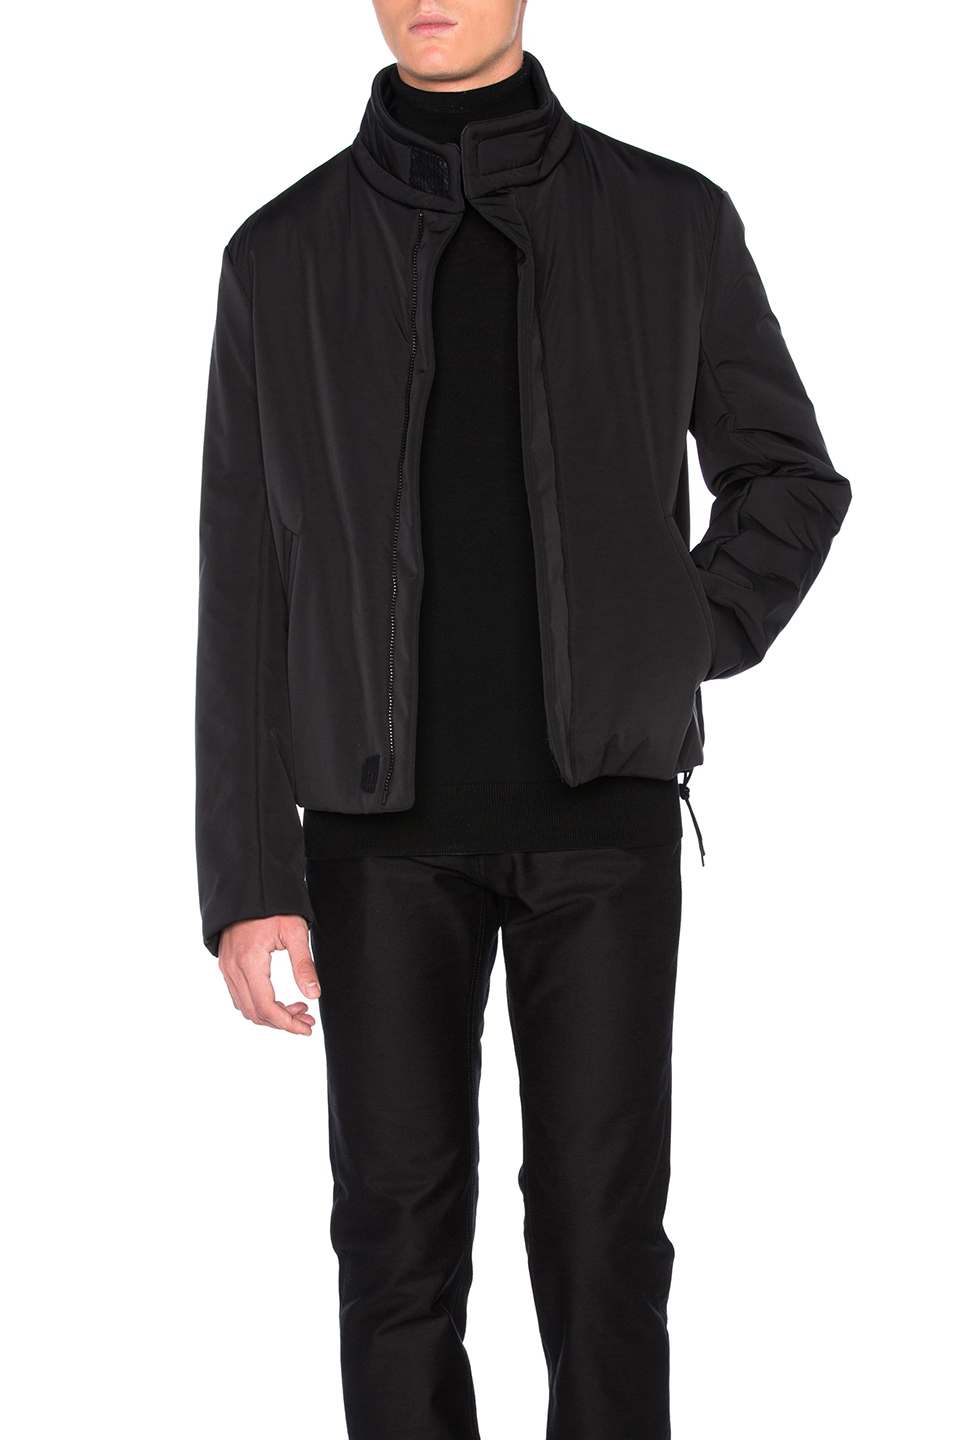 Photo of Maison Margiela Matte Polyester 3 Layer Jacket in Black - shop Maison Margiela menswear